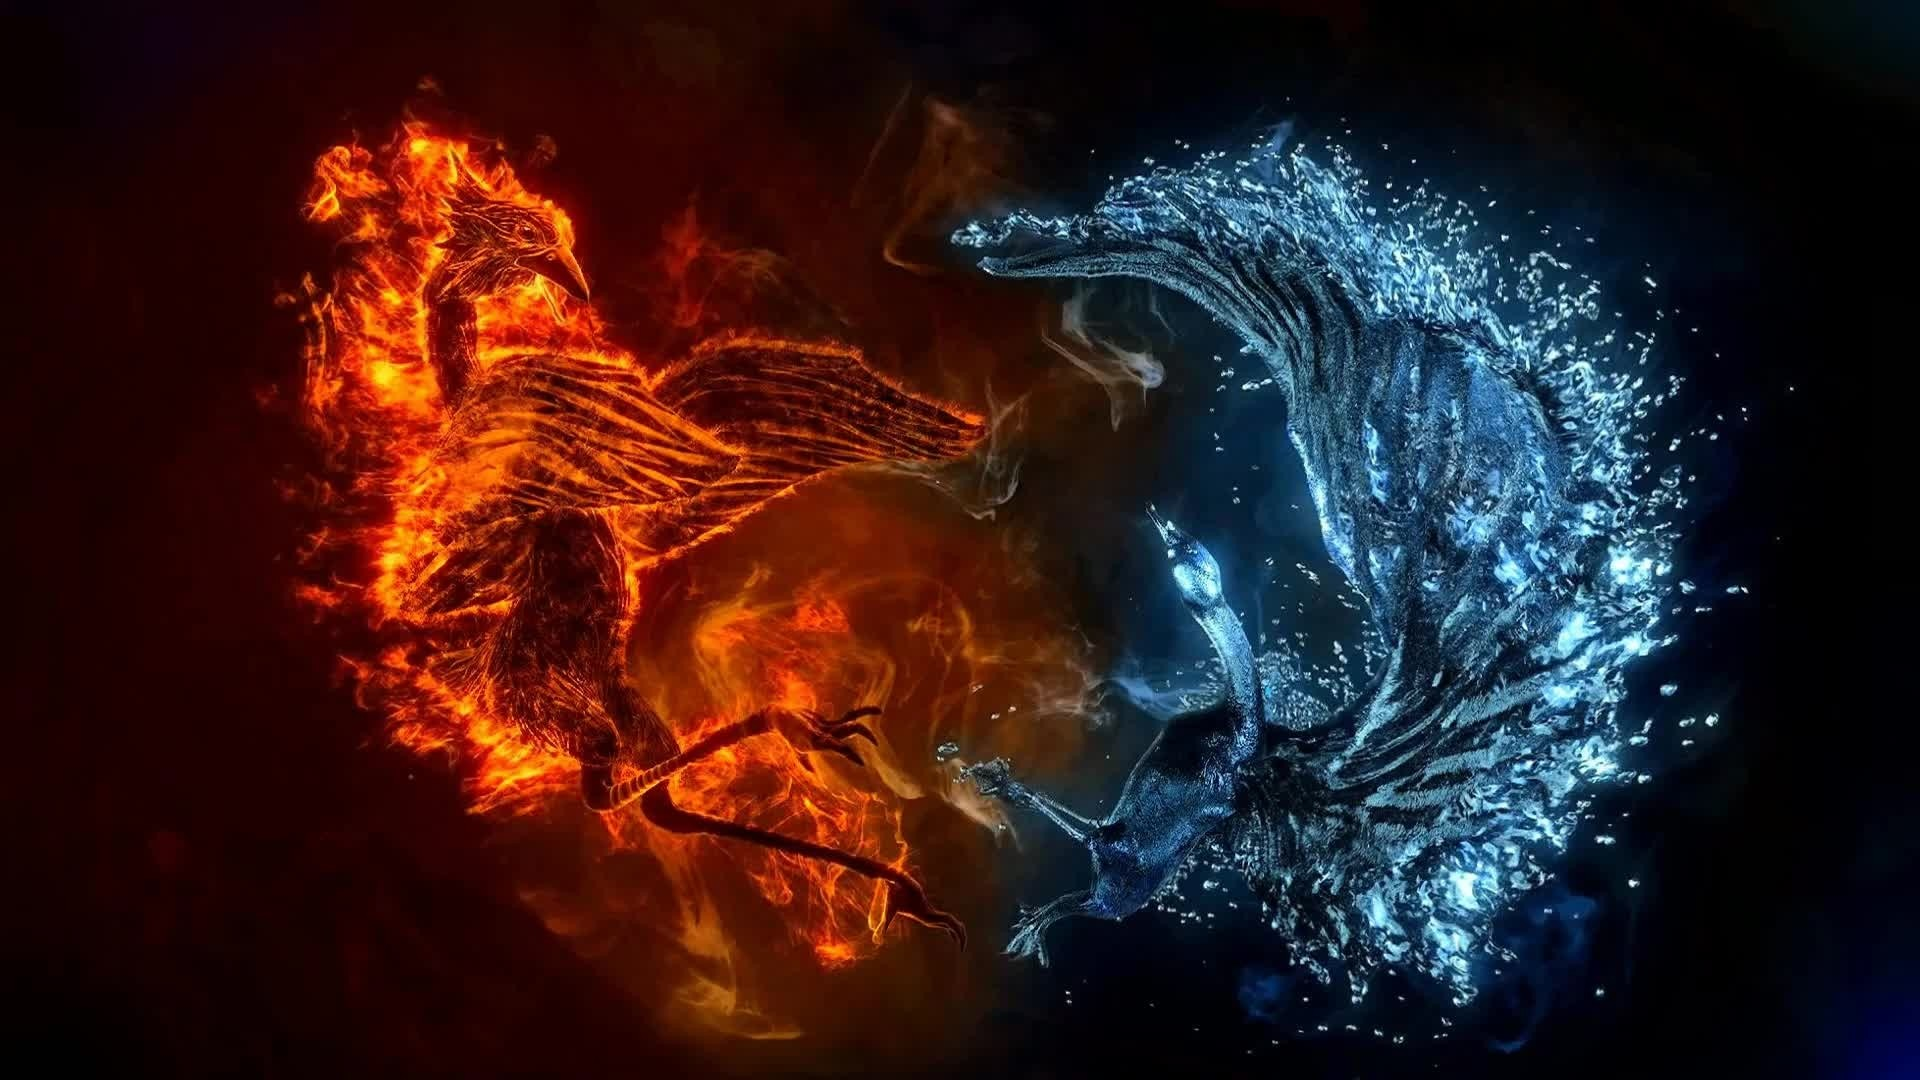 Fire And Ice computer wallpaper